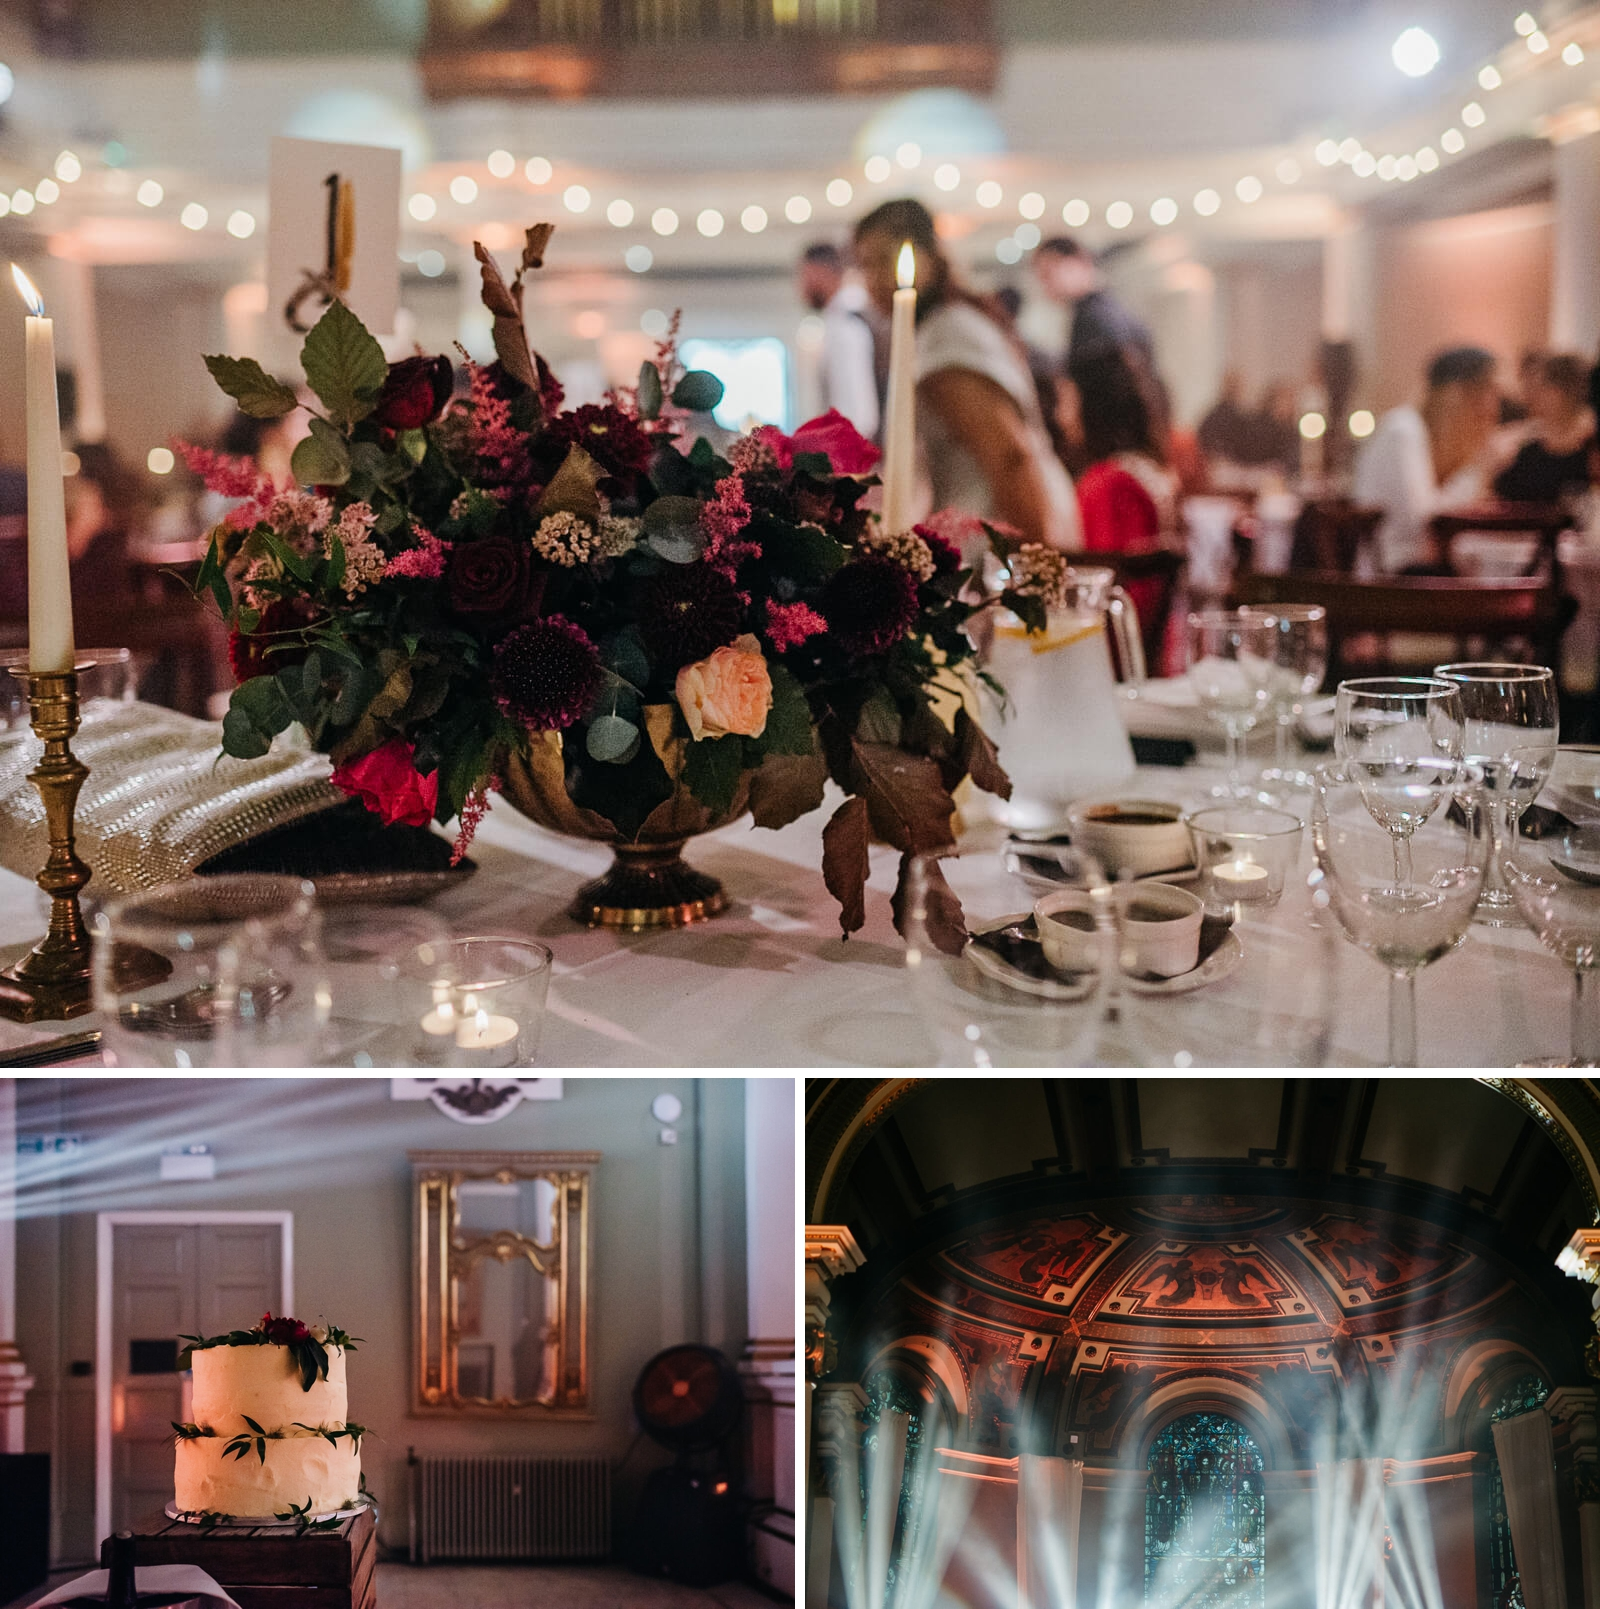 wedding details at Marylebone One